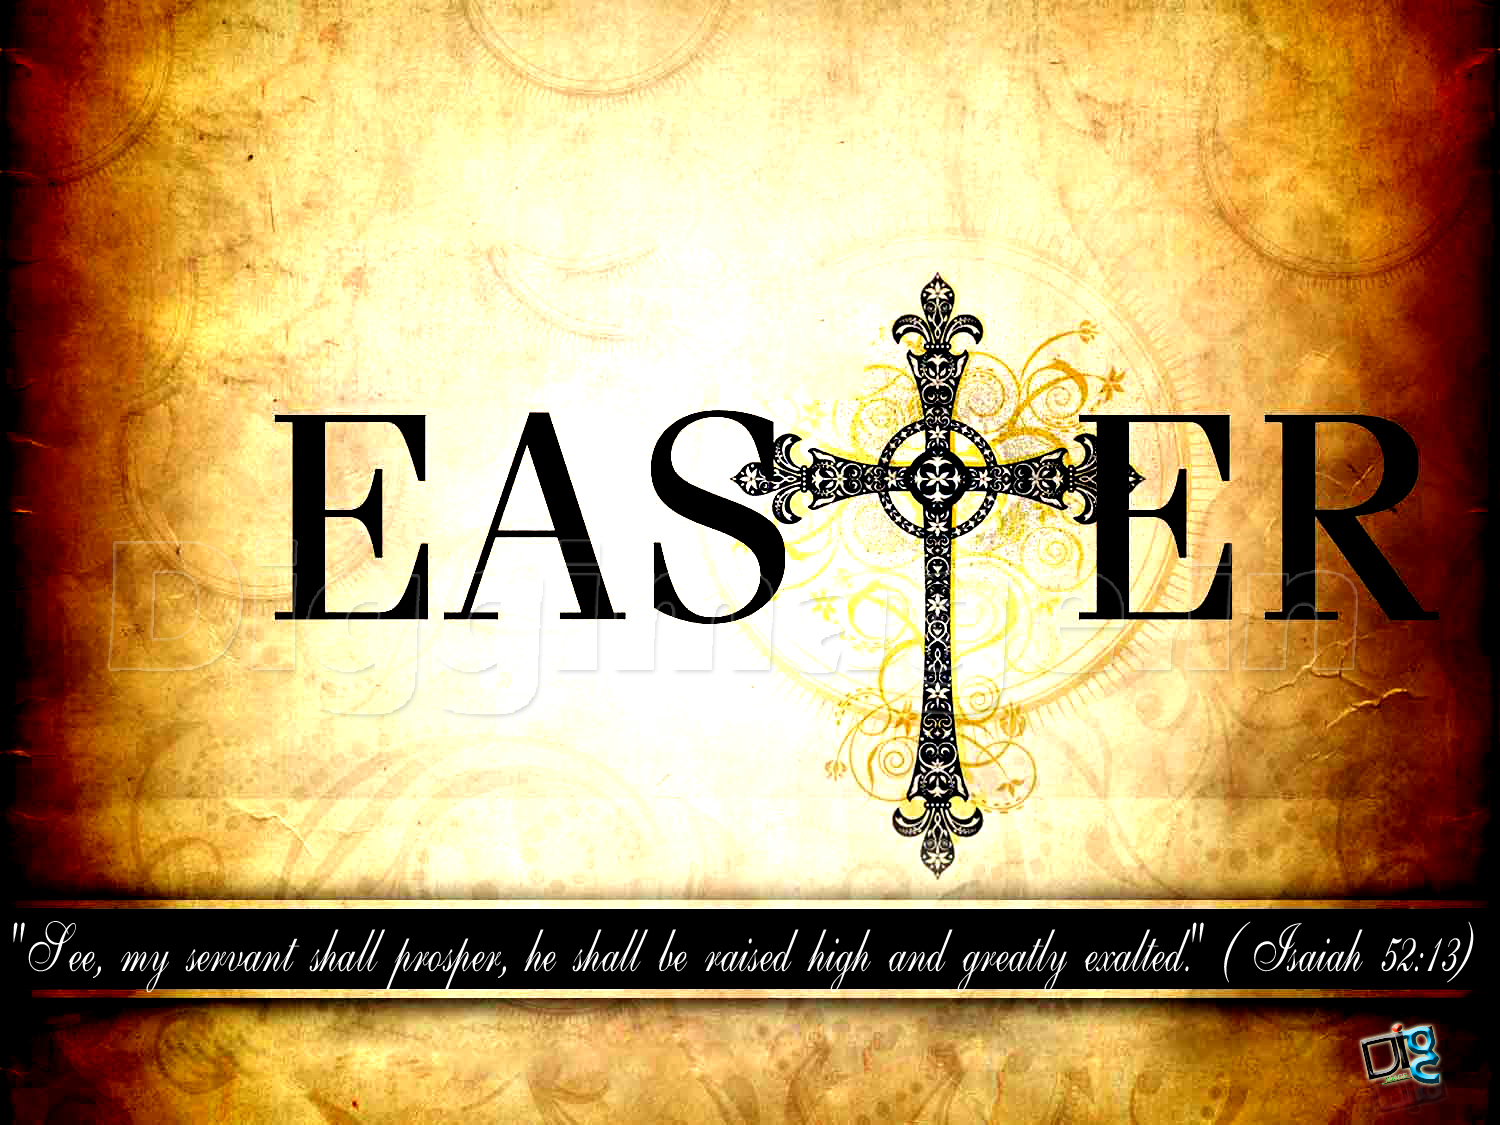 Easter Greeting Wallpaper Background